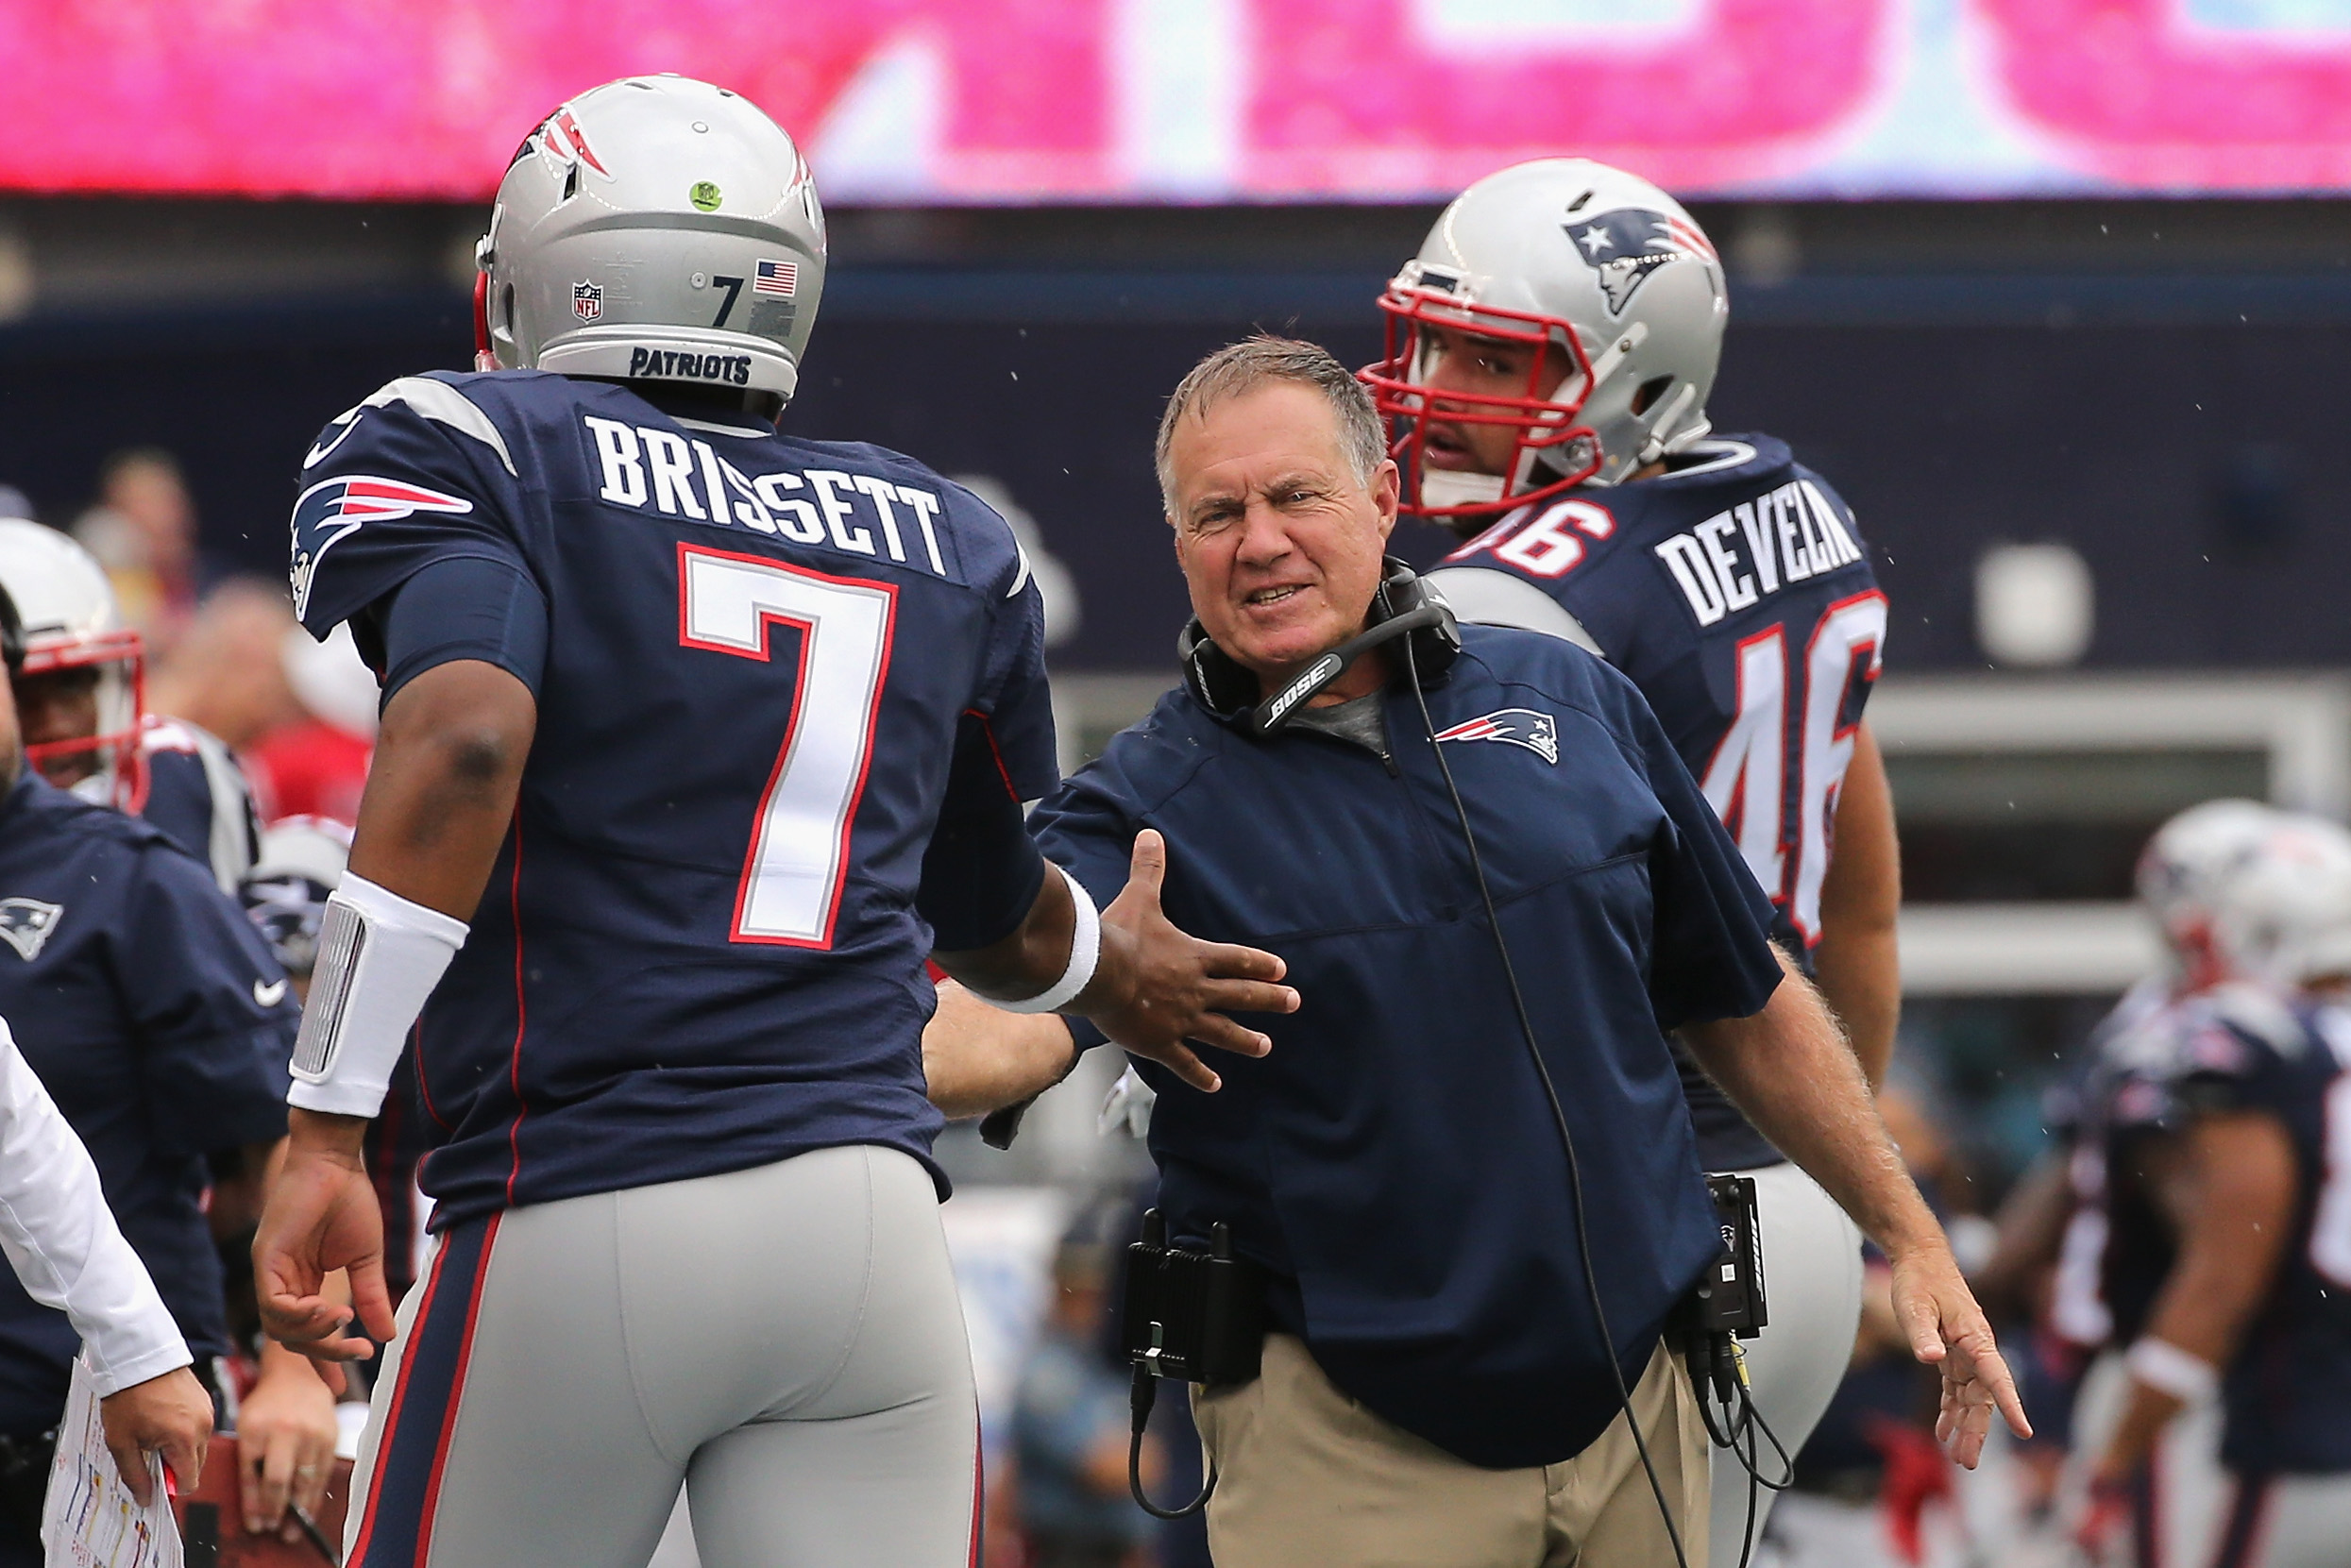 FOXBORO, MA - SEPTEMBER 18:  Head coach Bill Belichick of the New England Patriots high fives Jacoby Brissett #7 during the second half against the Miami Dolphins at Gillette Stadium on September 18, 2016 in Foxboro, Massachusetts.  (Photo by Jim Rogash/Getty Images)